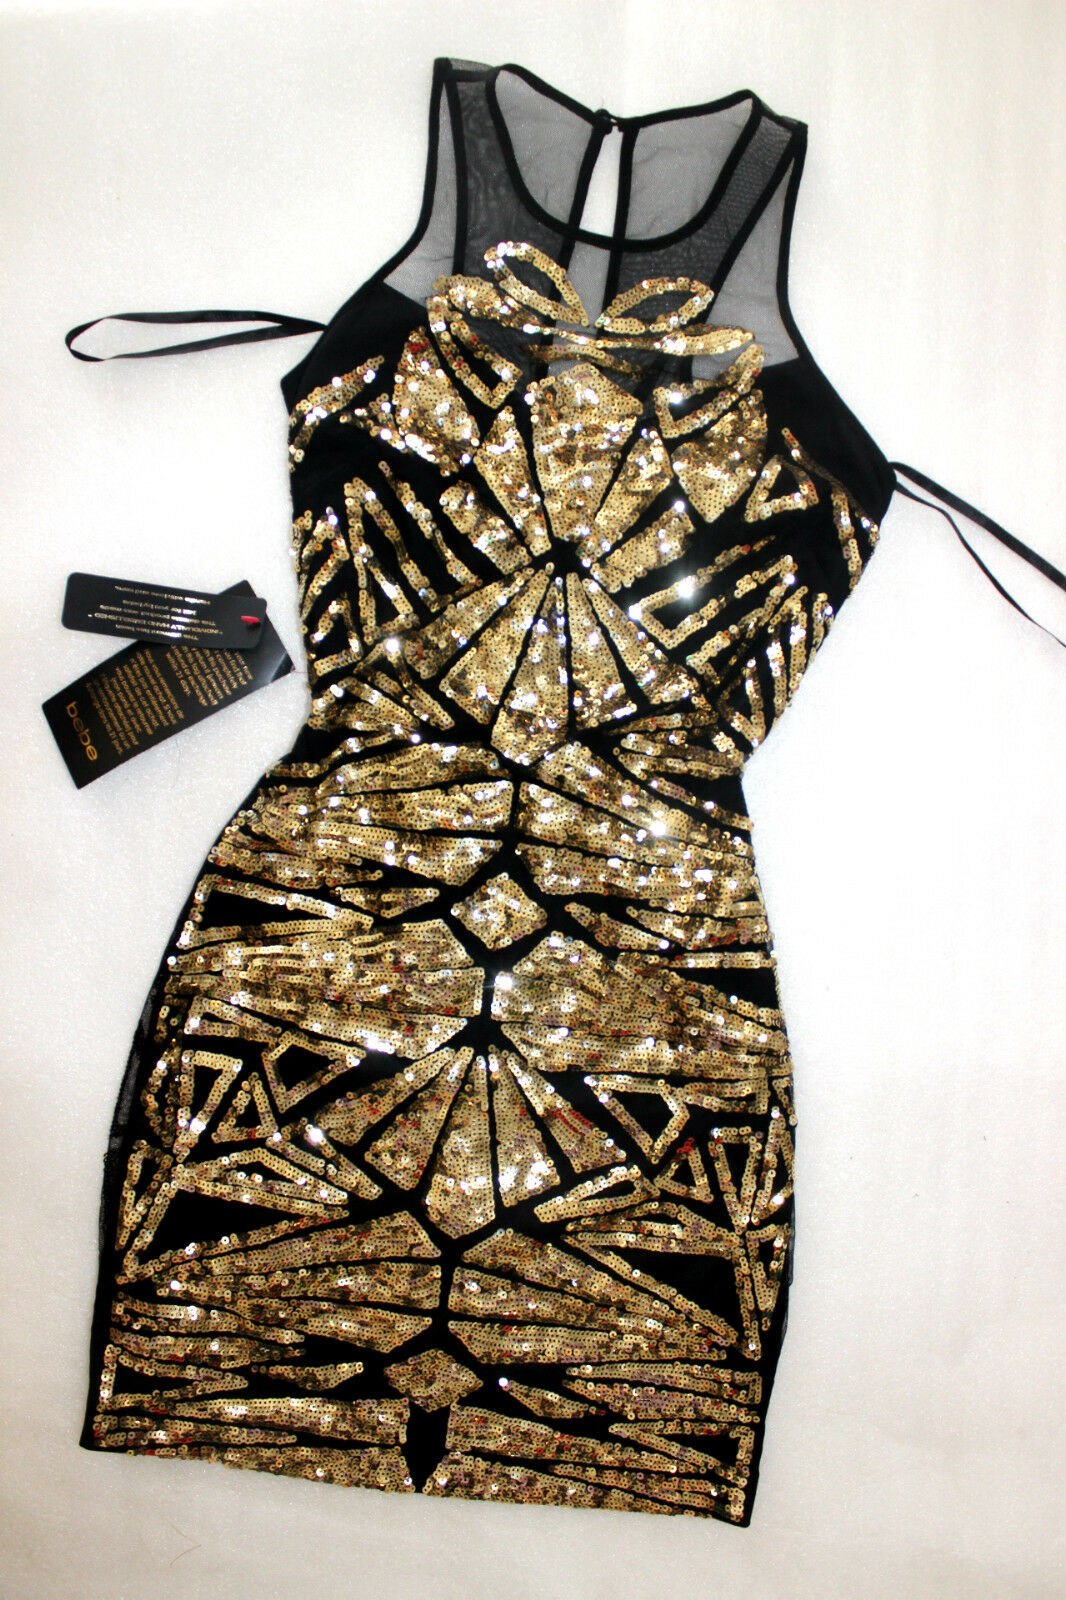 8ade67a7ba60e2 NWT Bebe schwarz Gold sequin deep v neck mesh sparkle mesh top dress M  Medium 6